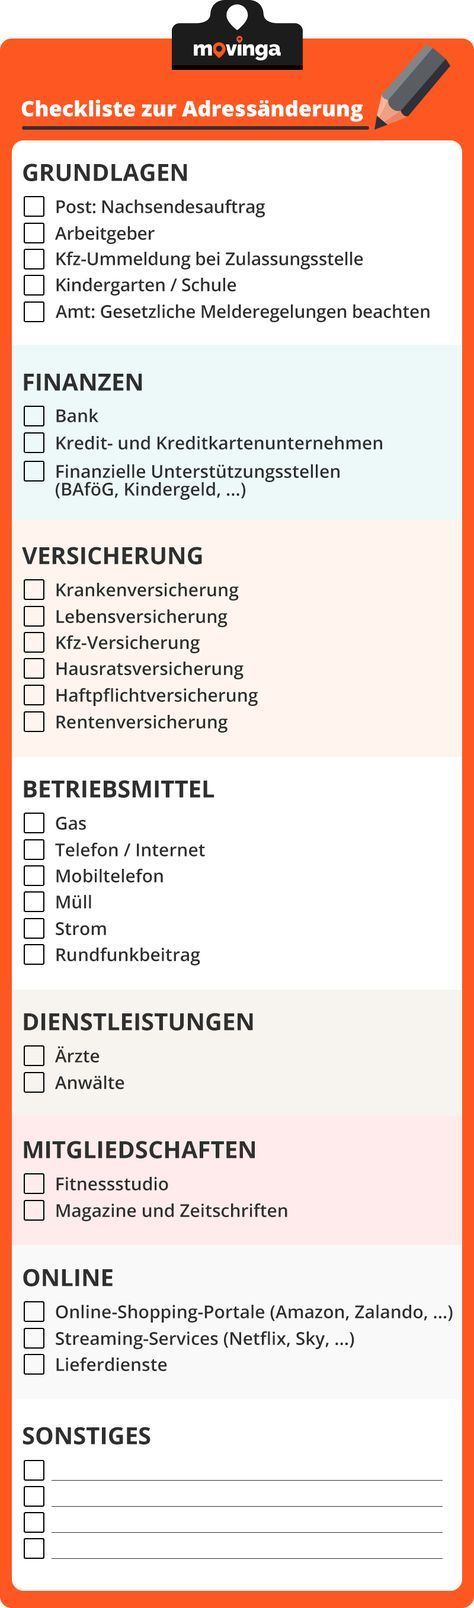 ihre checkliste zur adress nderung beim umzug umzug pinterest. Black Bedroom Furniture Sets. Home Design Ideas